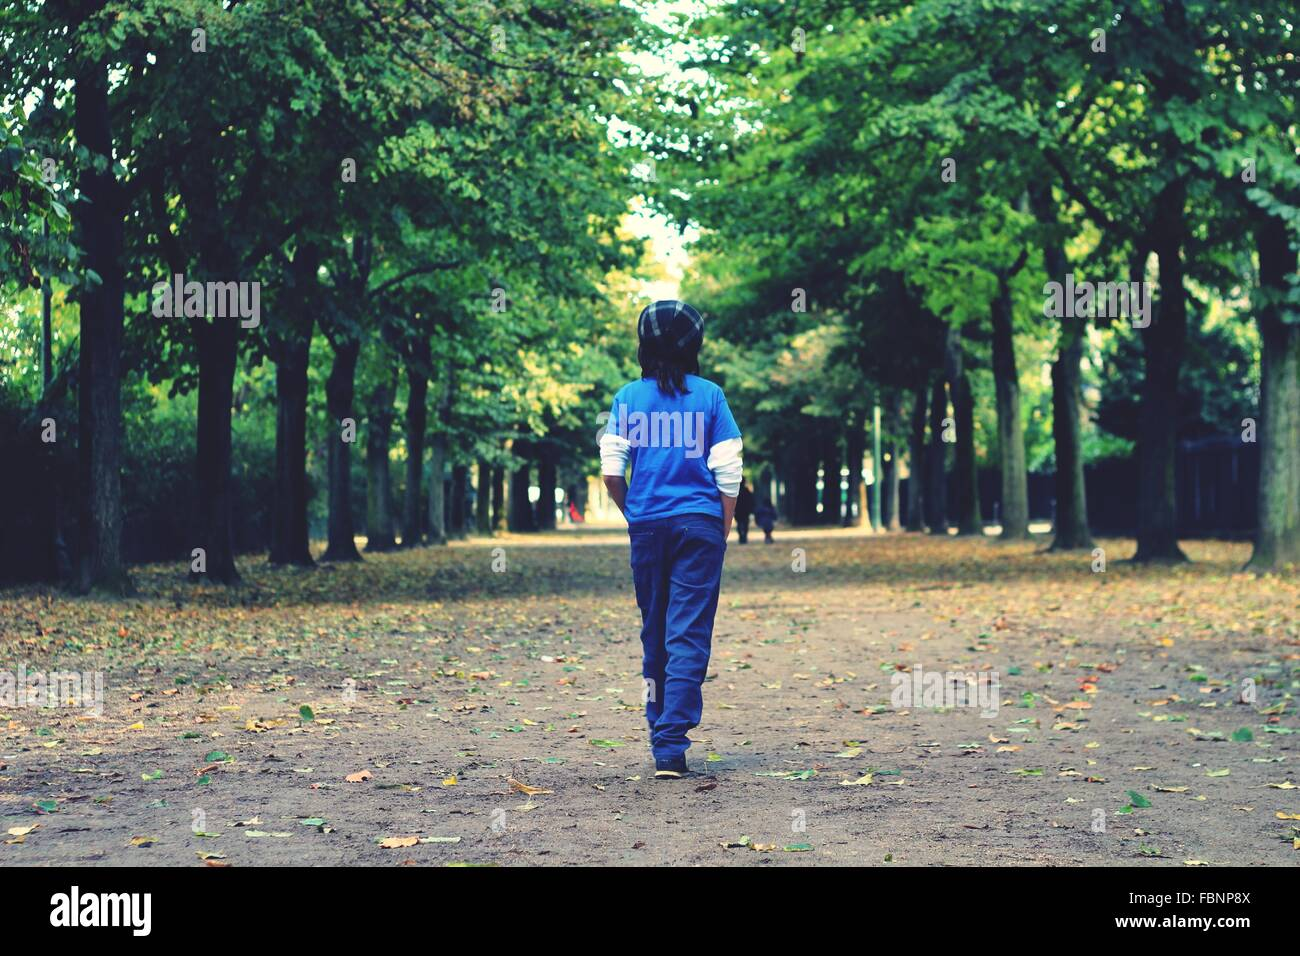 Rear View Of Girl Walking On Street Amidst Trees - Stock Image